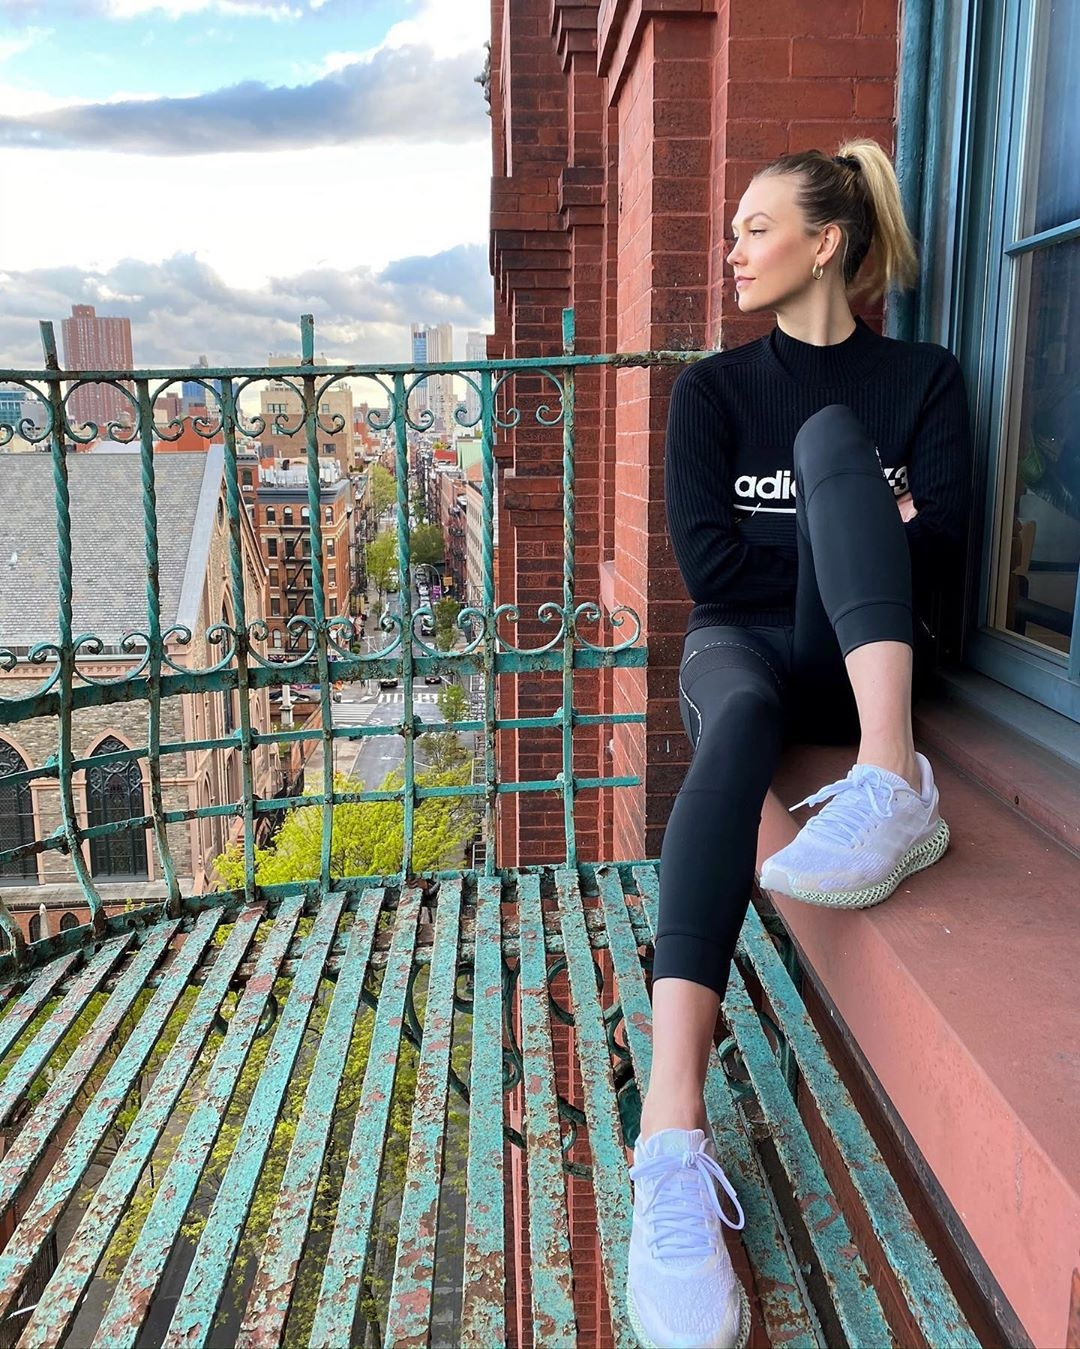 Karlie Kloss donning white mesh lace-up sneakers